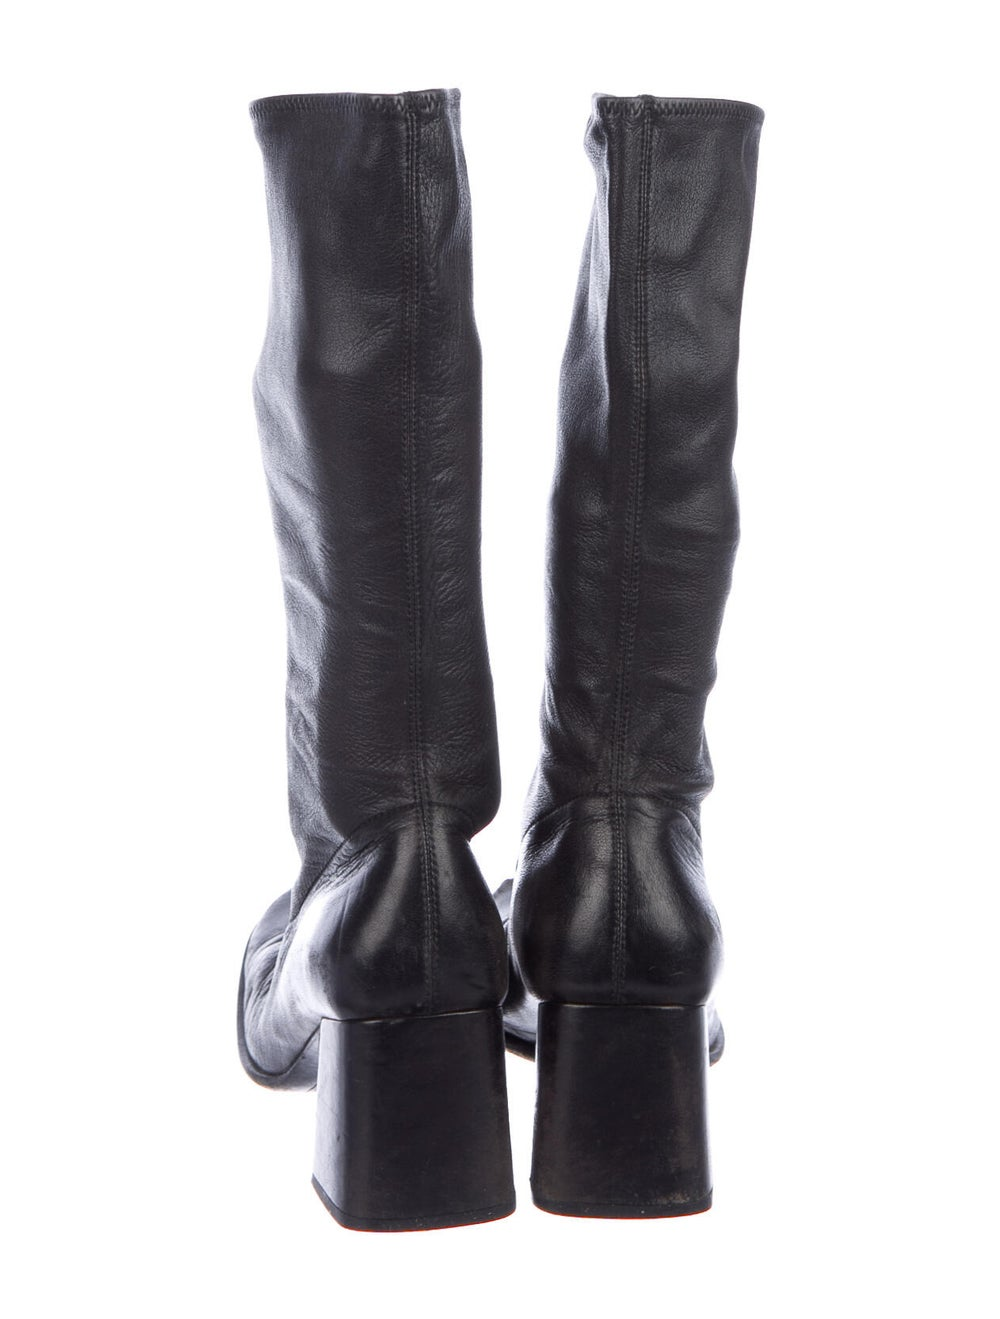 Prada Leather Boots Black - image 4